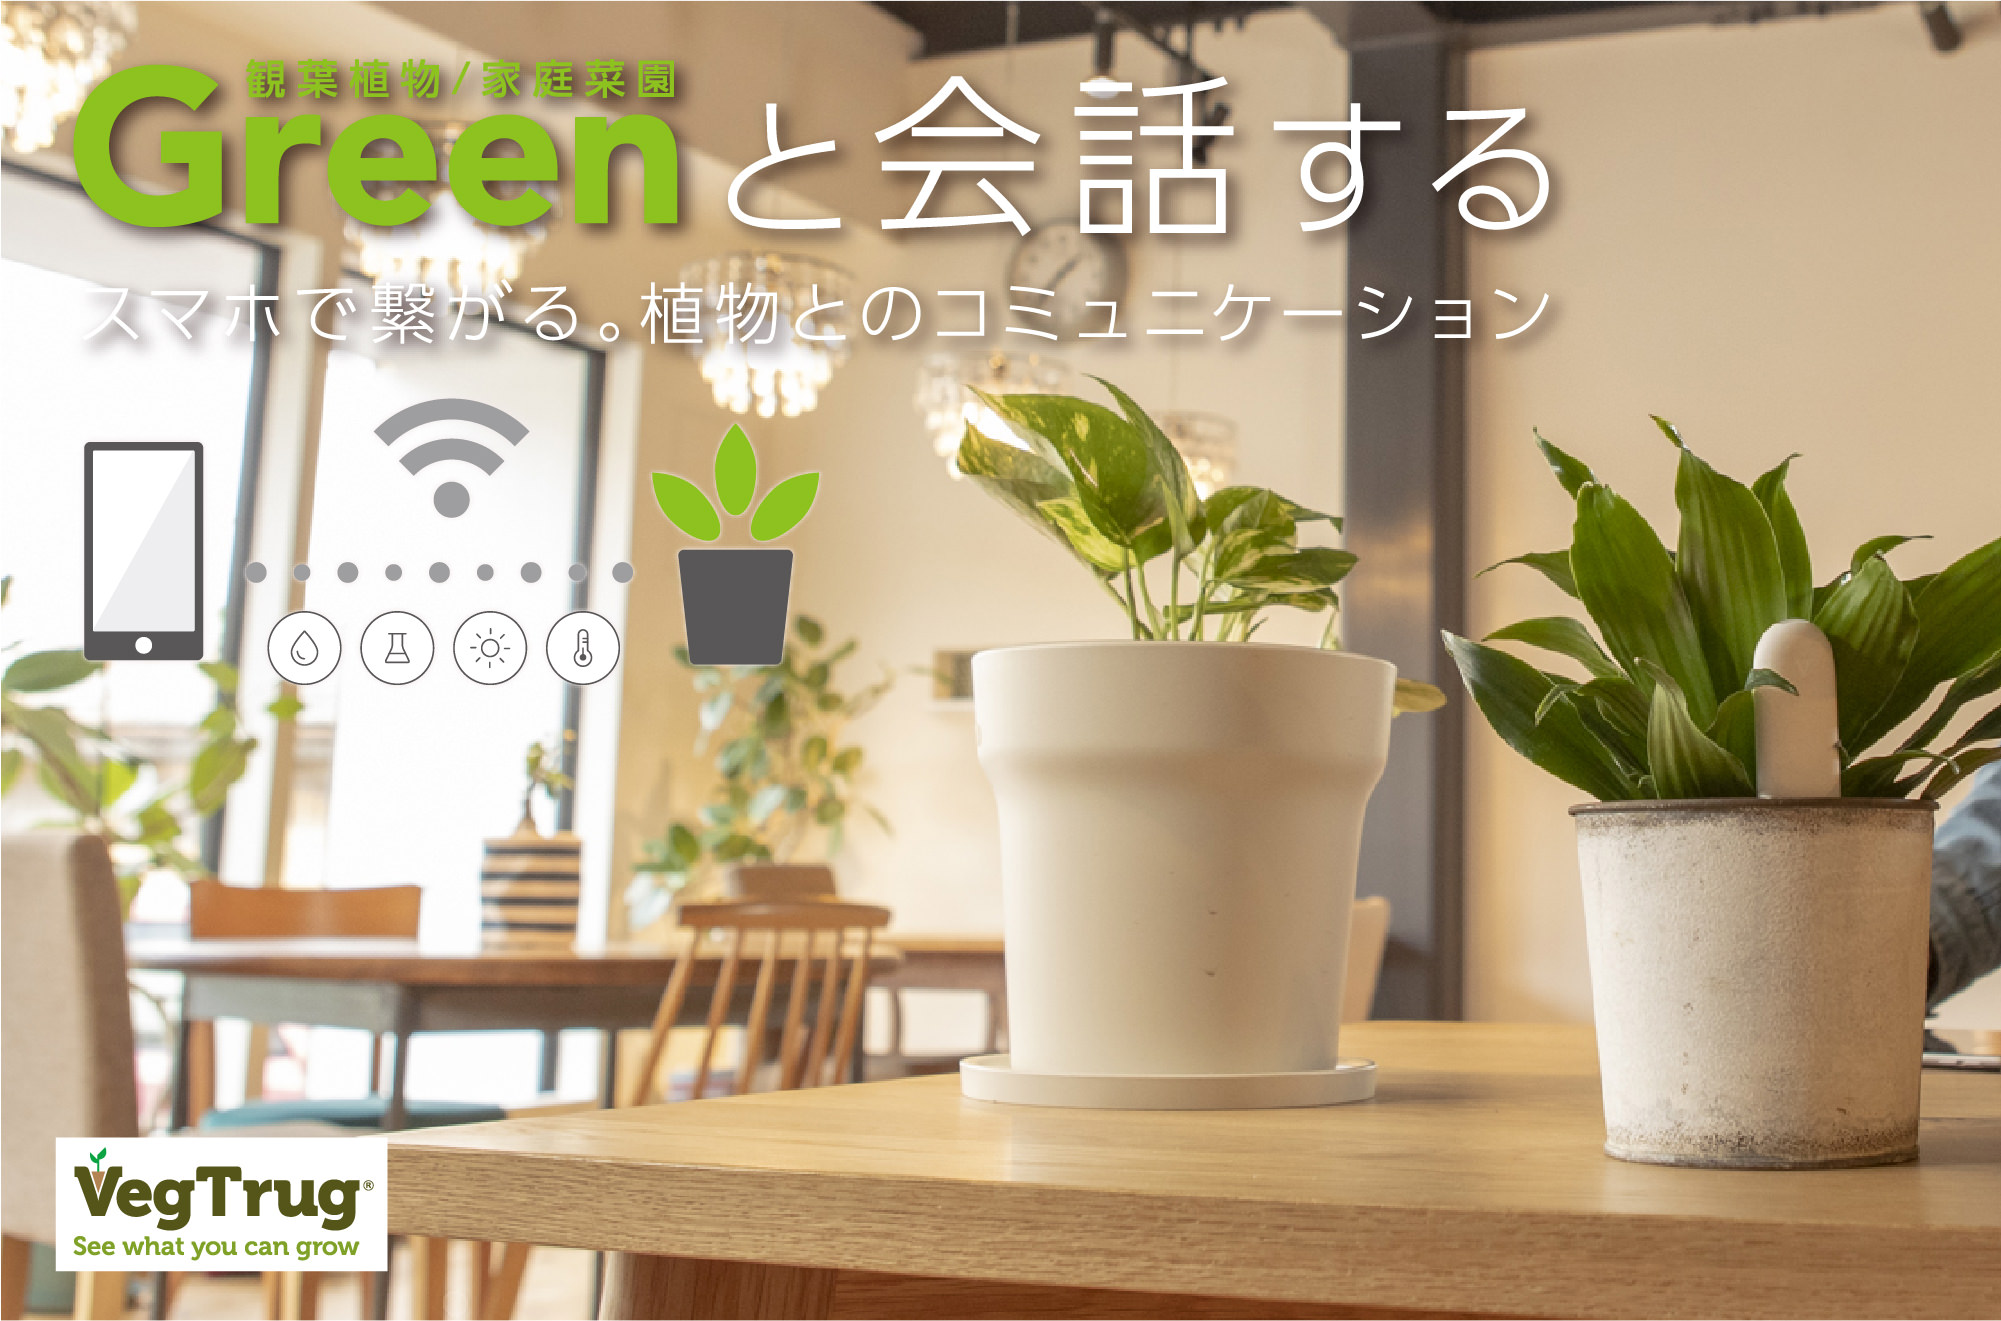 Green(観葉植物/家庭菜園)と会話する スマホで繋がる。植物とのコミュニケーション VegTrug See what you can grow